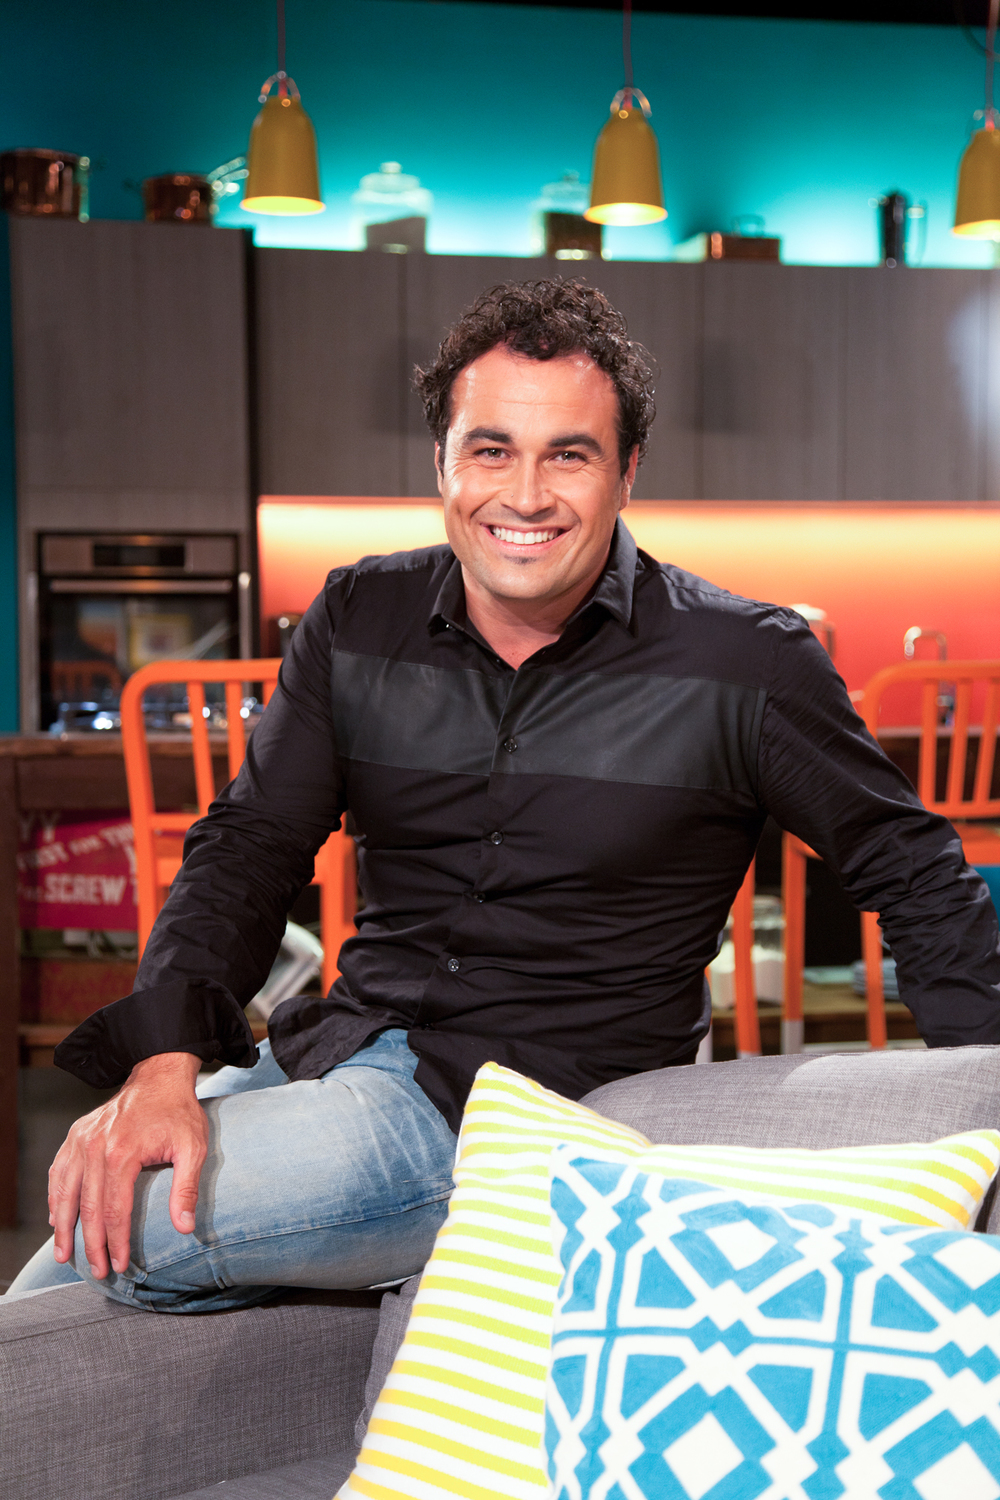 Miguel Maestre image - Supplied/Ten Network